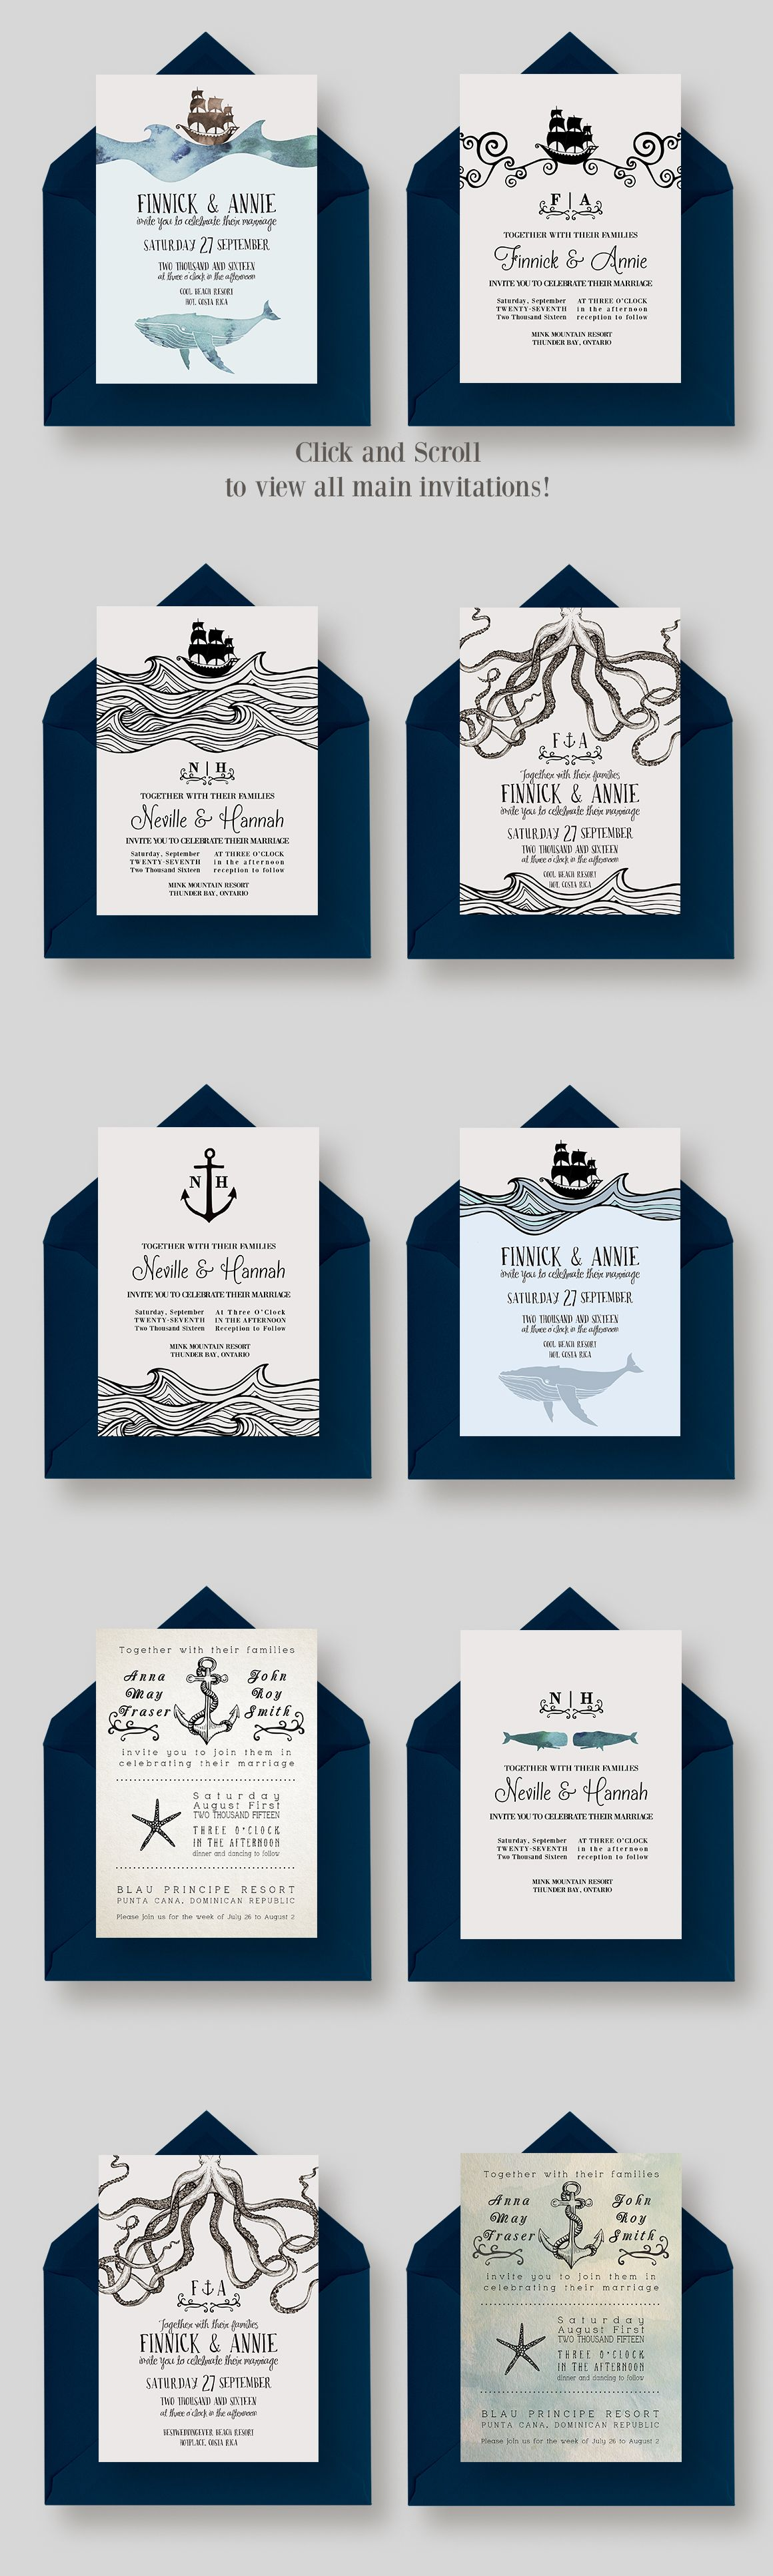 giant nautical wedding collection by knotted design on